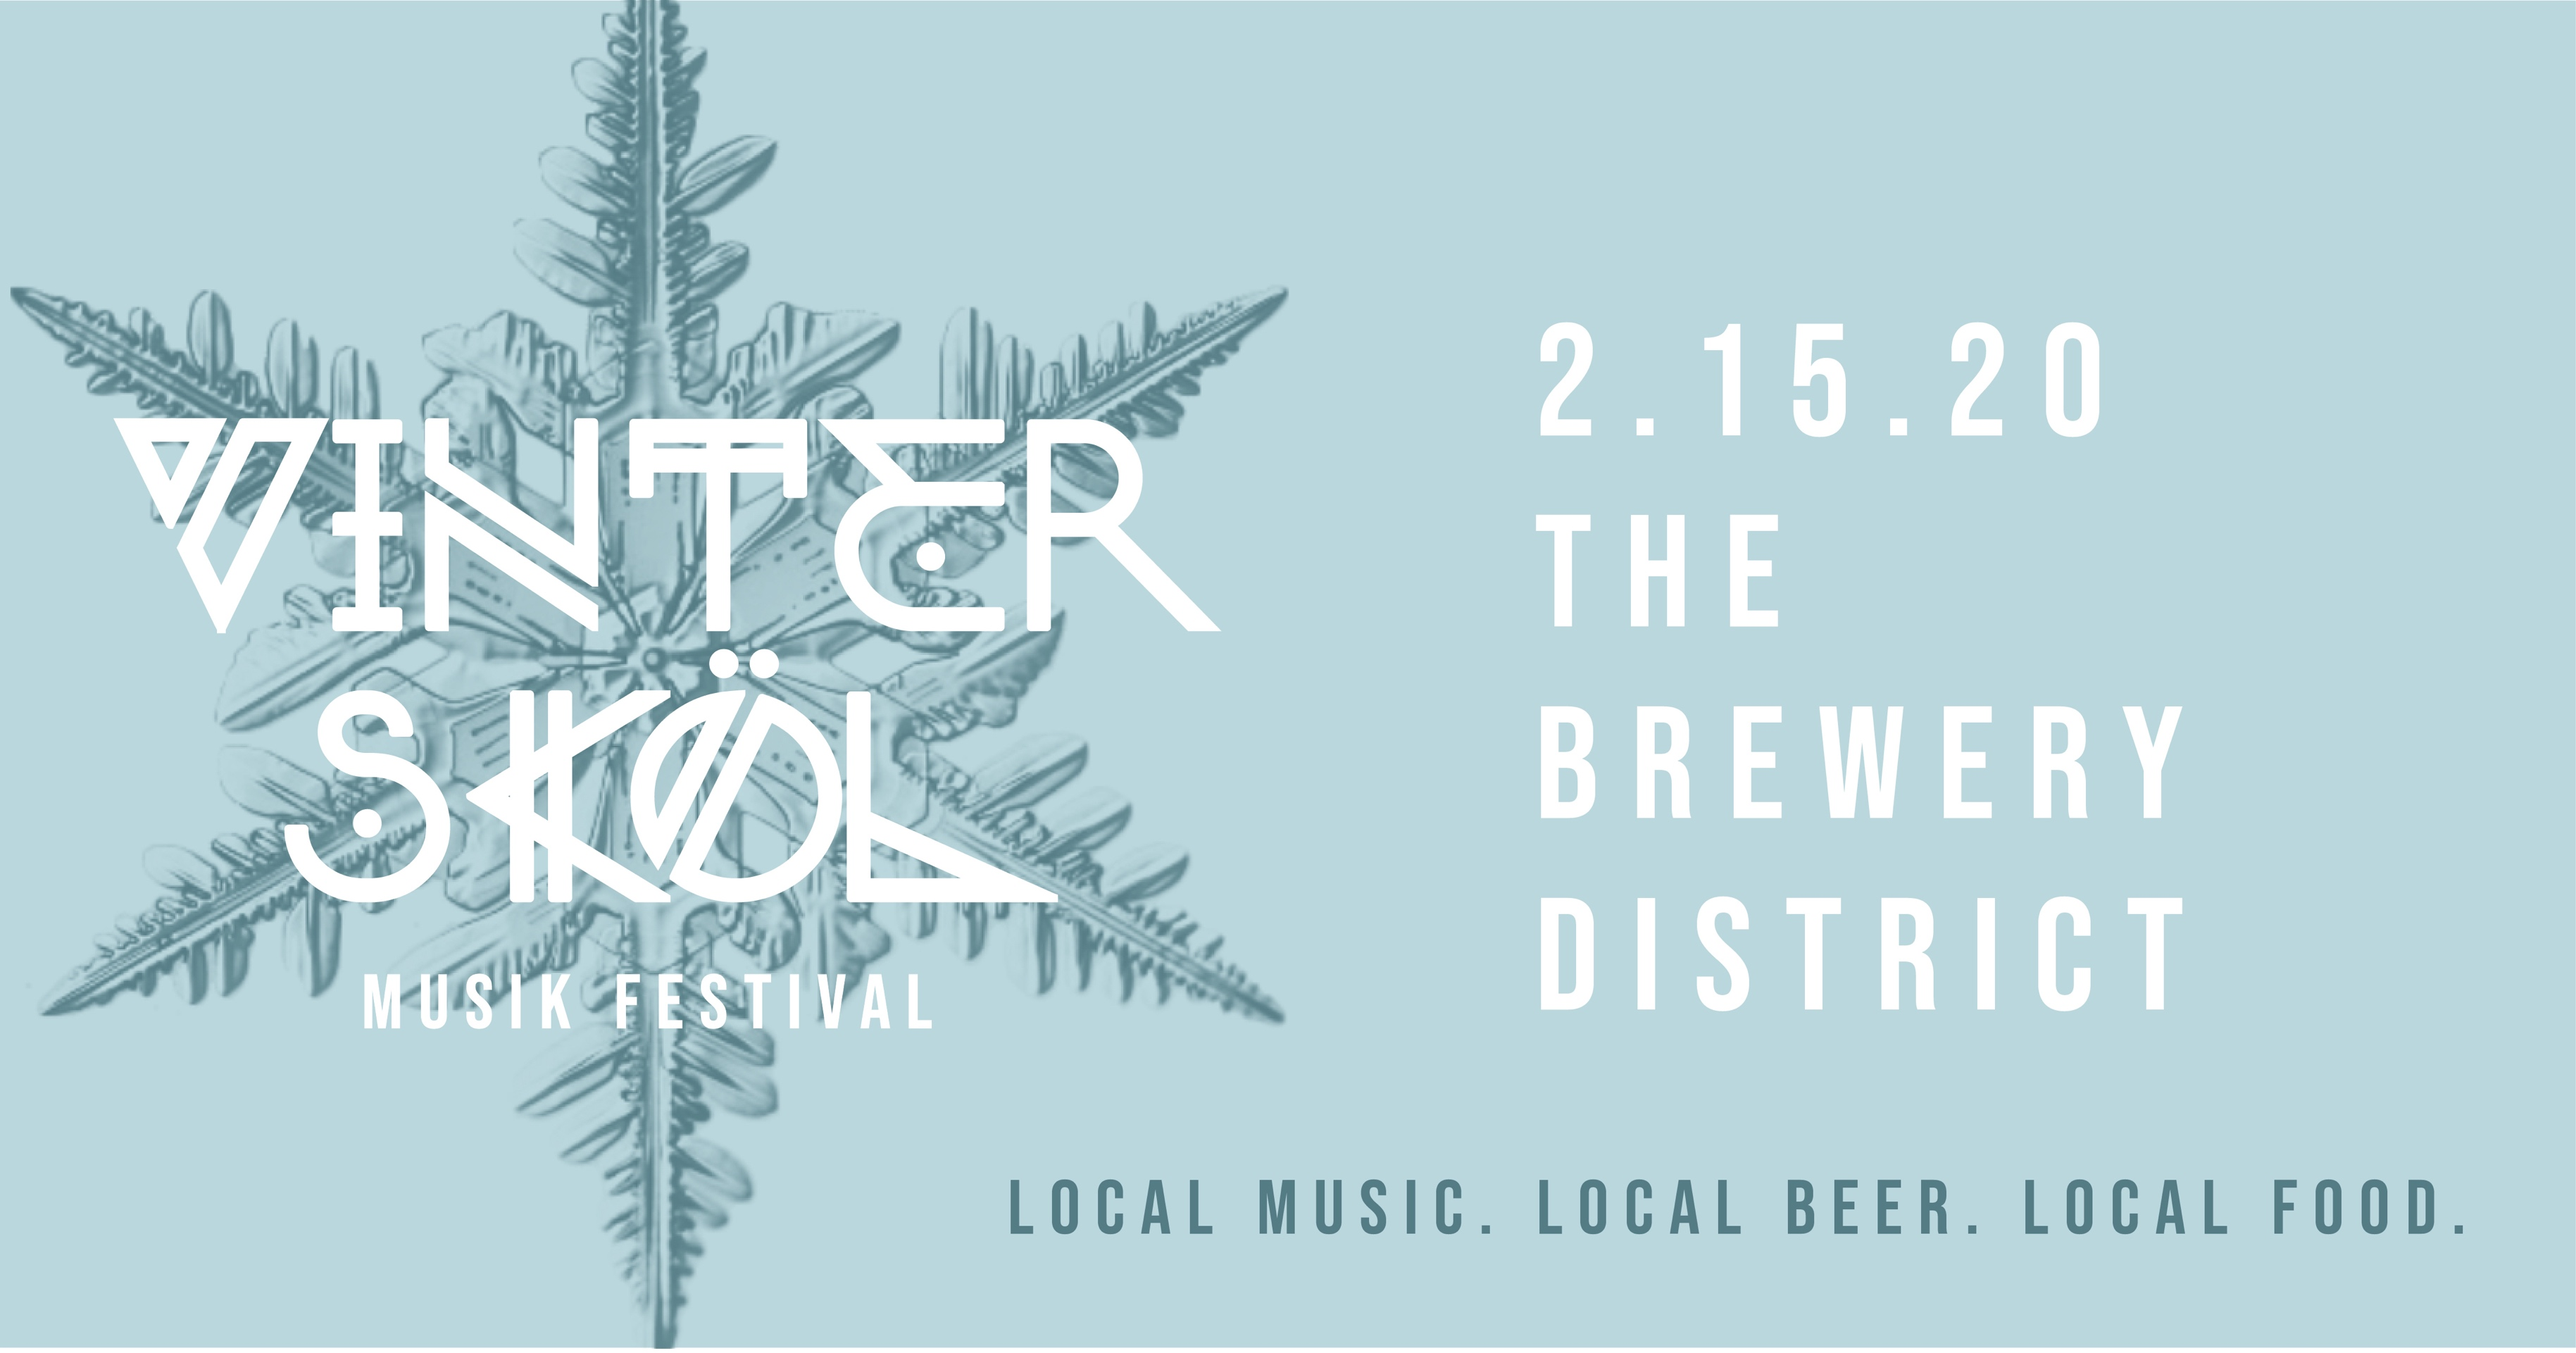 The Brewery Neighborhood Improvement District #1 to host first VinterSköl Musik Fest